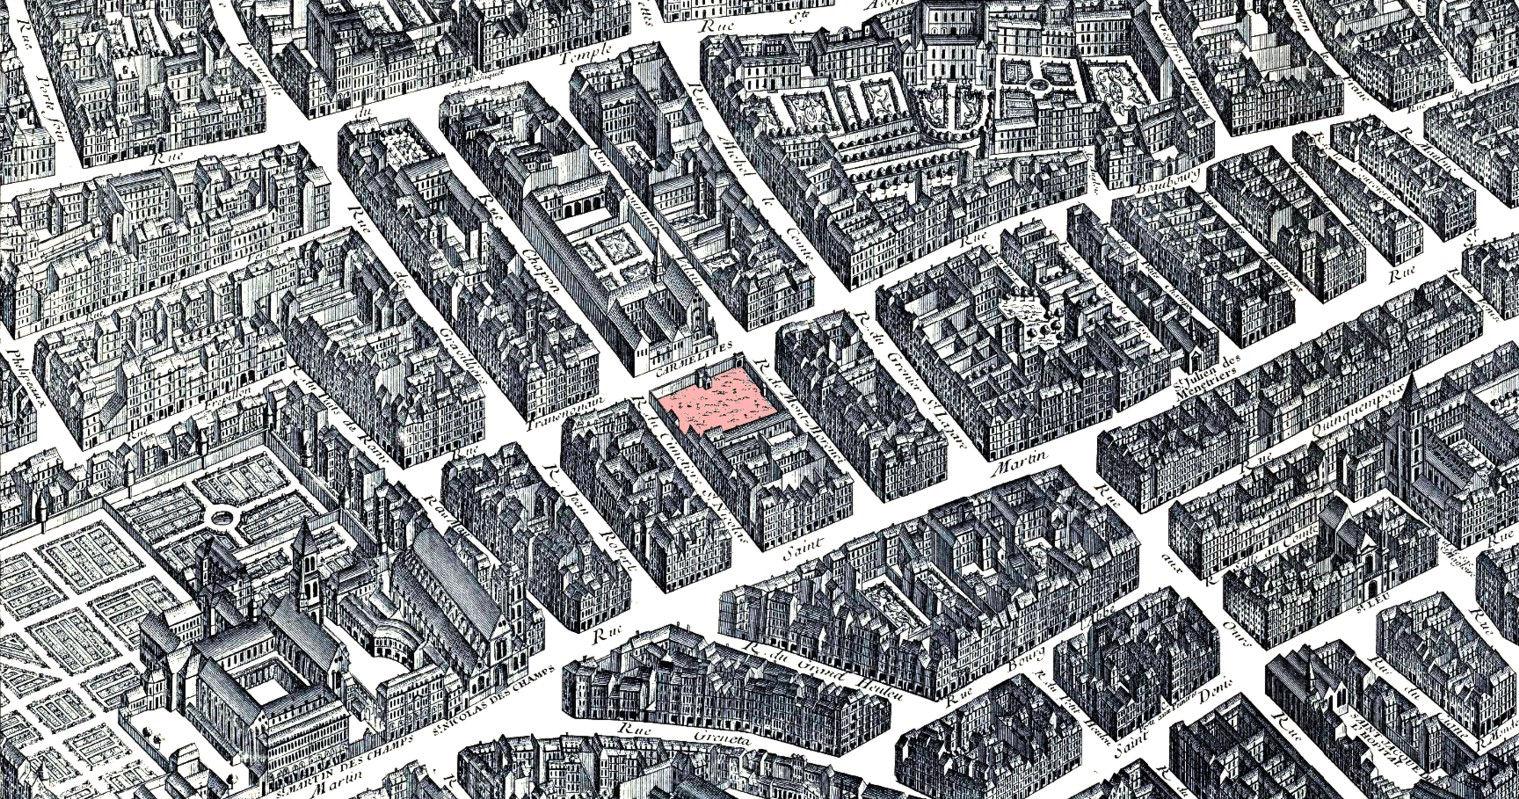 Quartier de Saint Nicolas des Champs, plan de Turgot, 1735-1739.